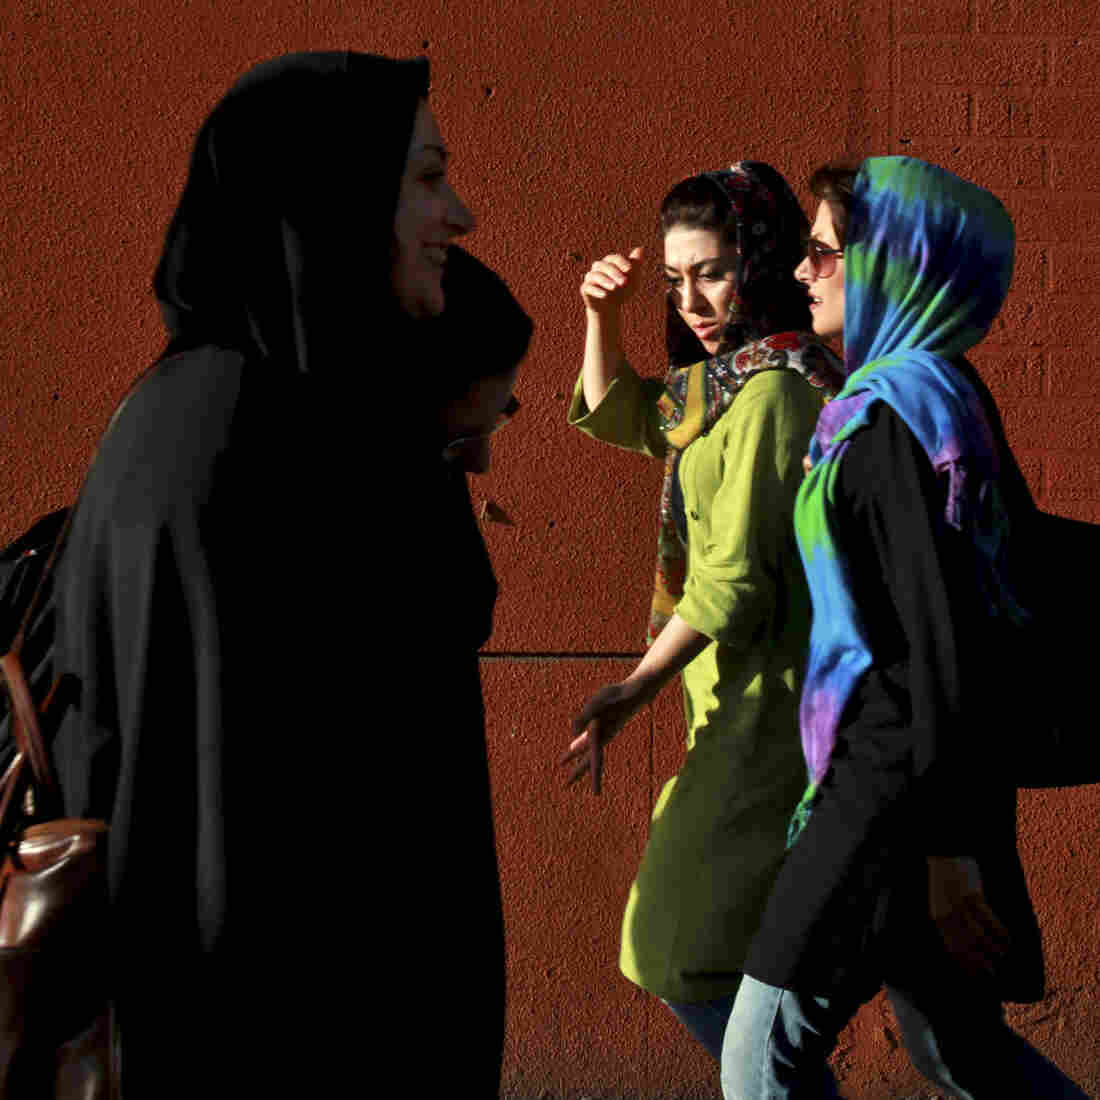 Iranian Women Make A Push For Greater Opportunities